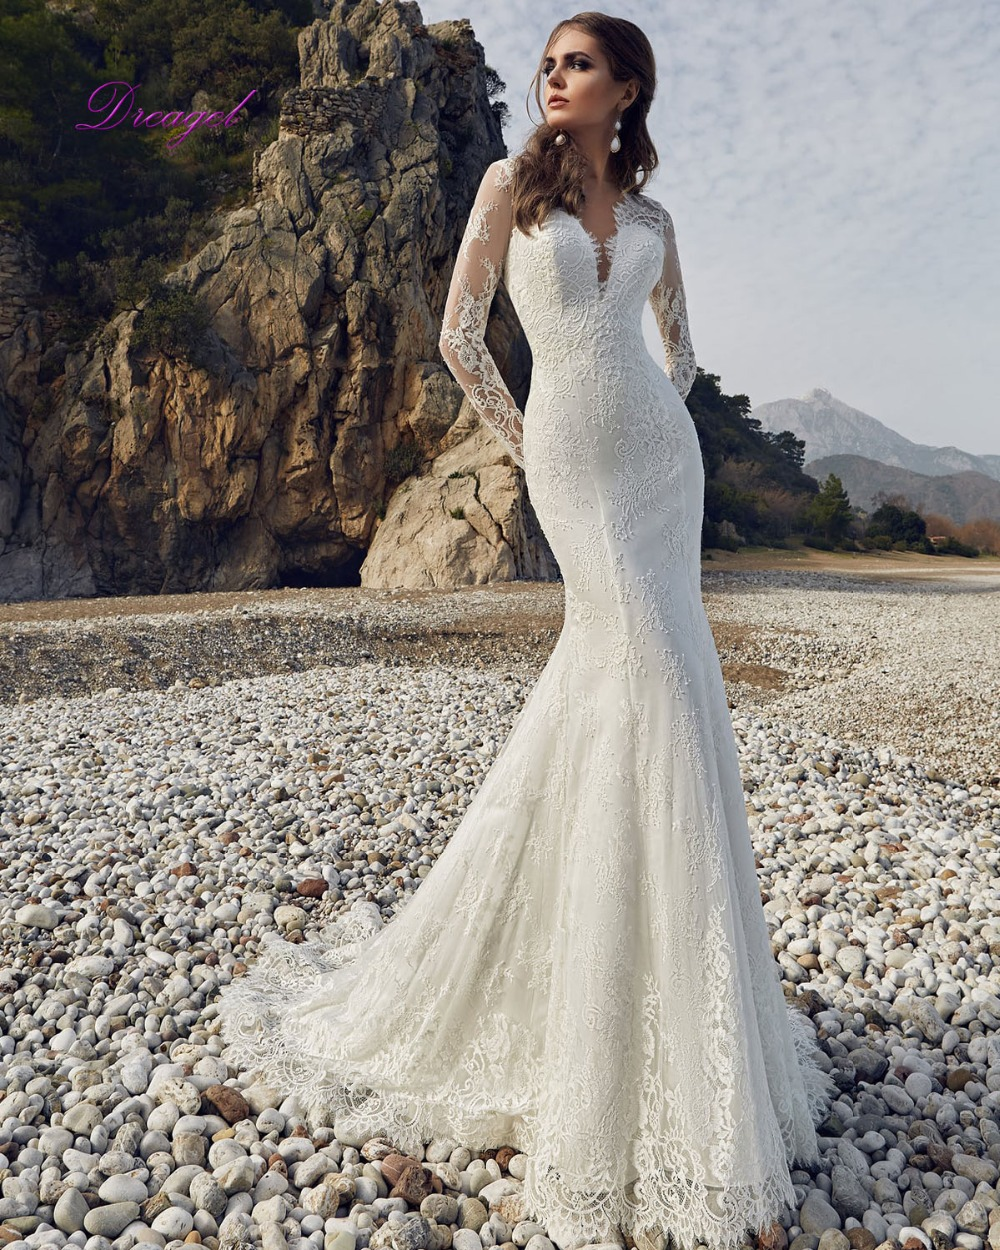 Wedding Dresses With Lace Sleeves 2017 : Aliexpress buy dreagel new arrival elegant long